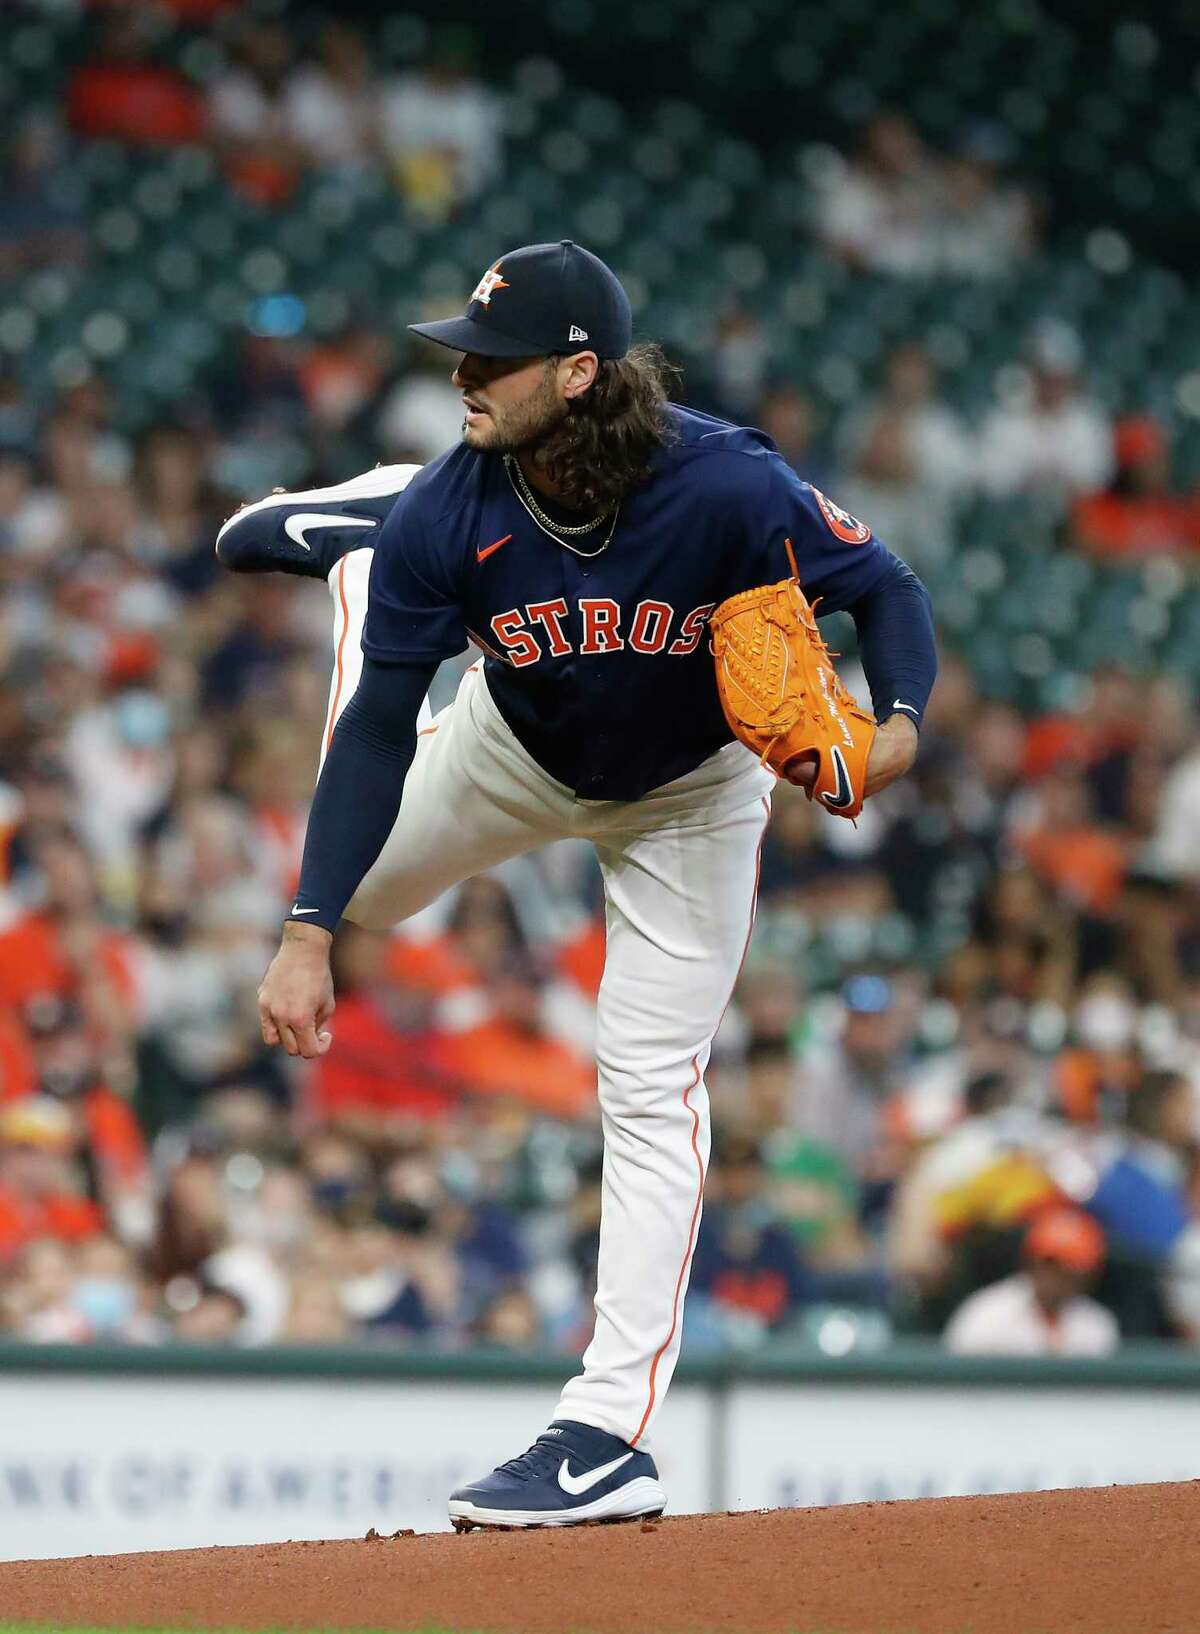 Houston Astros starting pitcher Lance McCullers Jr. (43) pitches during the first inning of an MLB baseball game at Minute Maid Park, Sunday, April 25, 2021, in Houston.